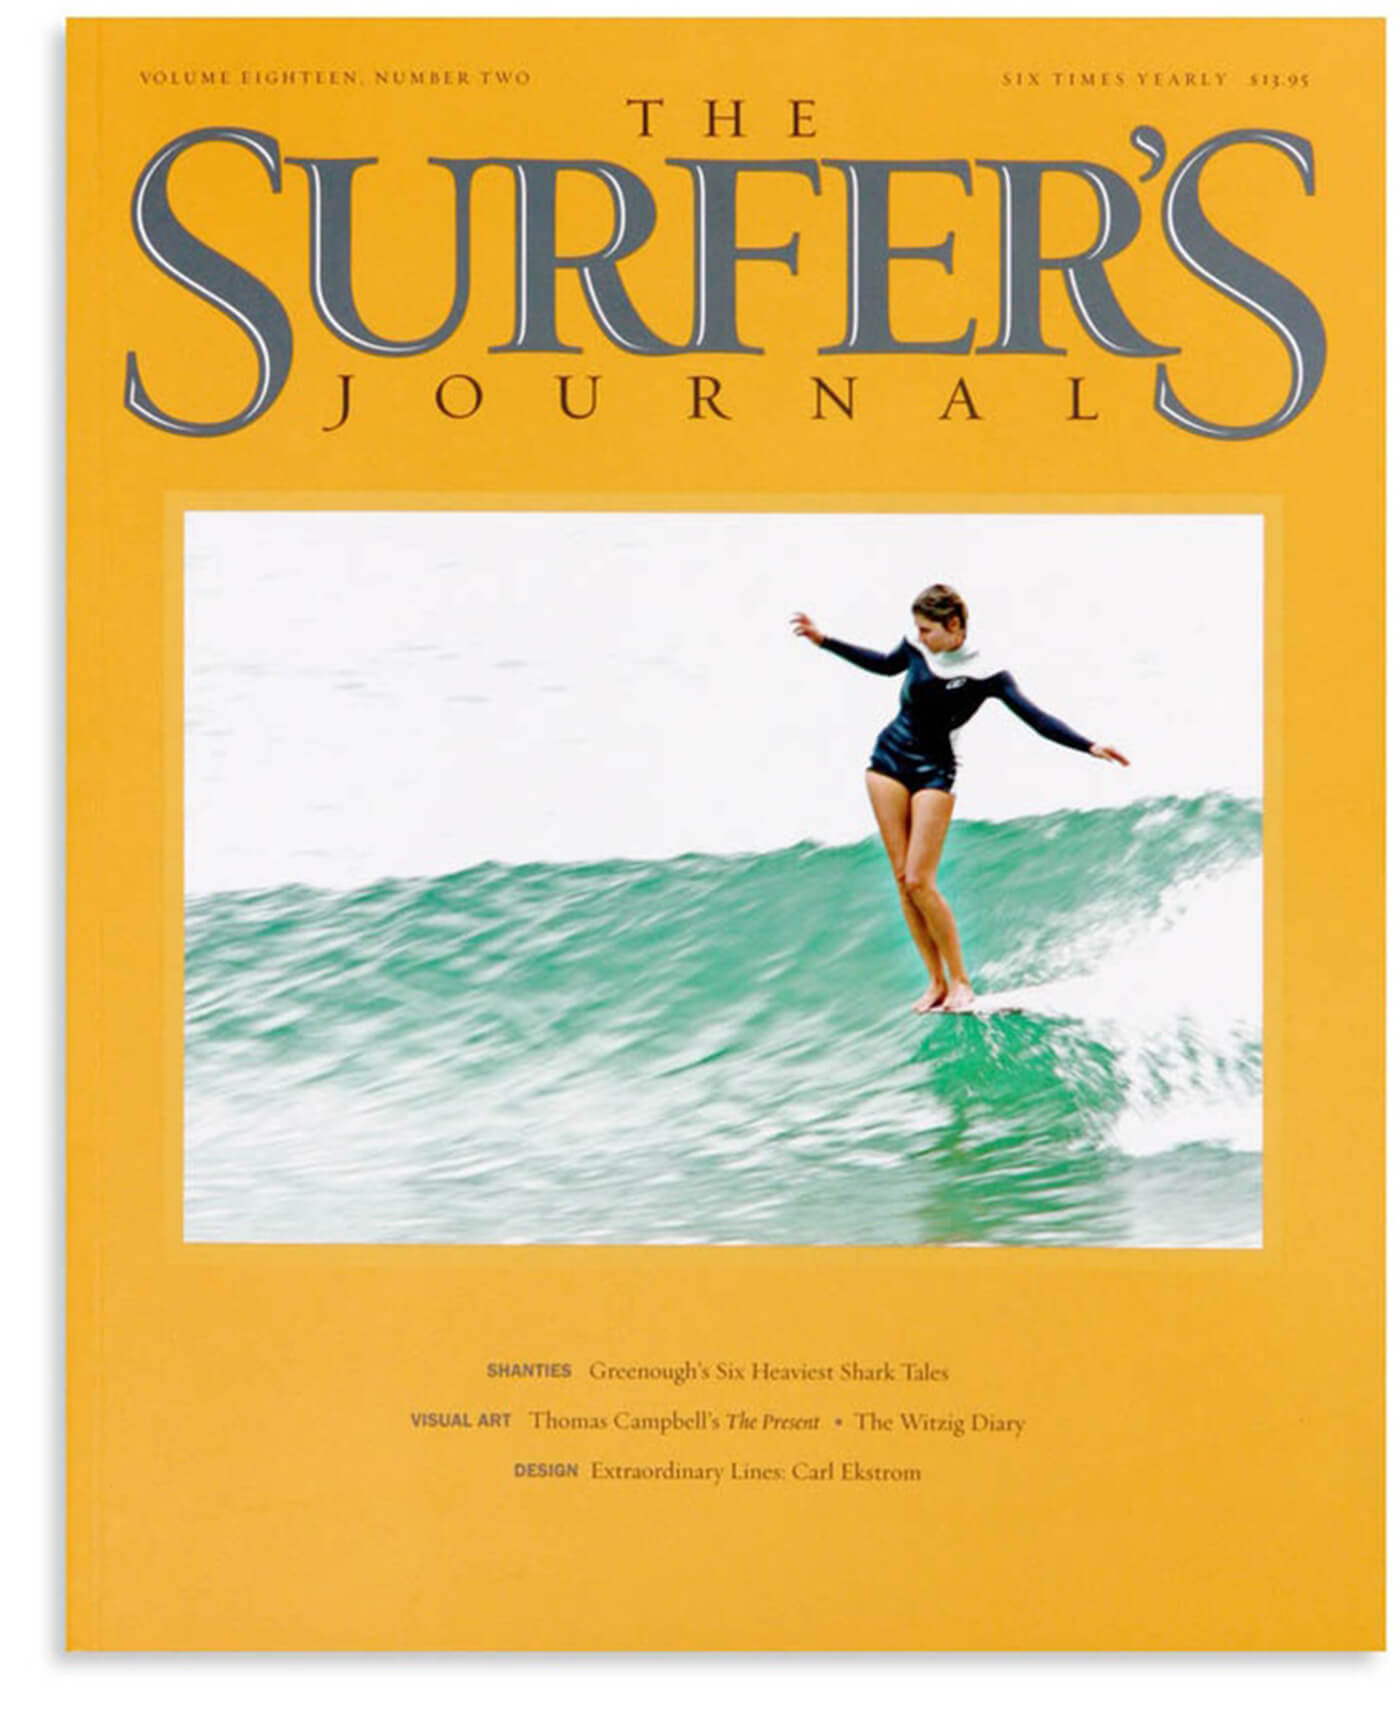 Photo of the first ever woman on the cover of the Surfer's Journal magazine